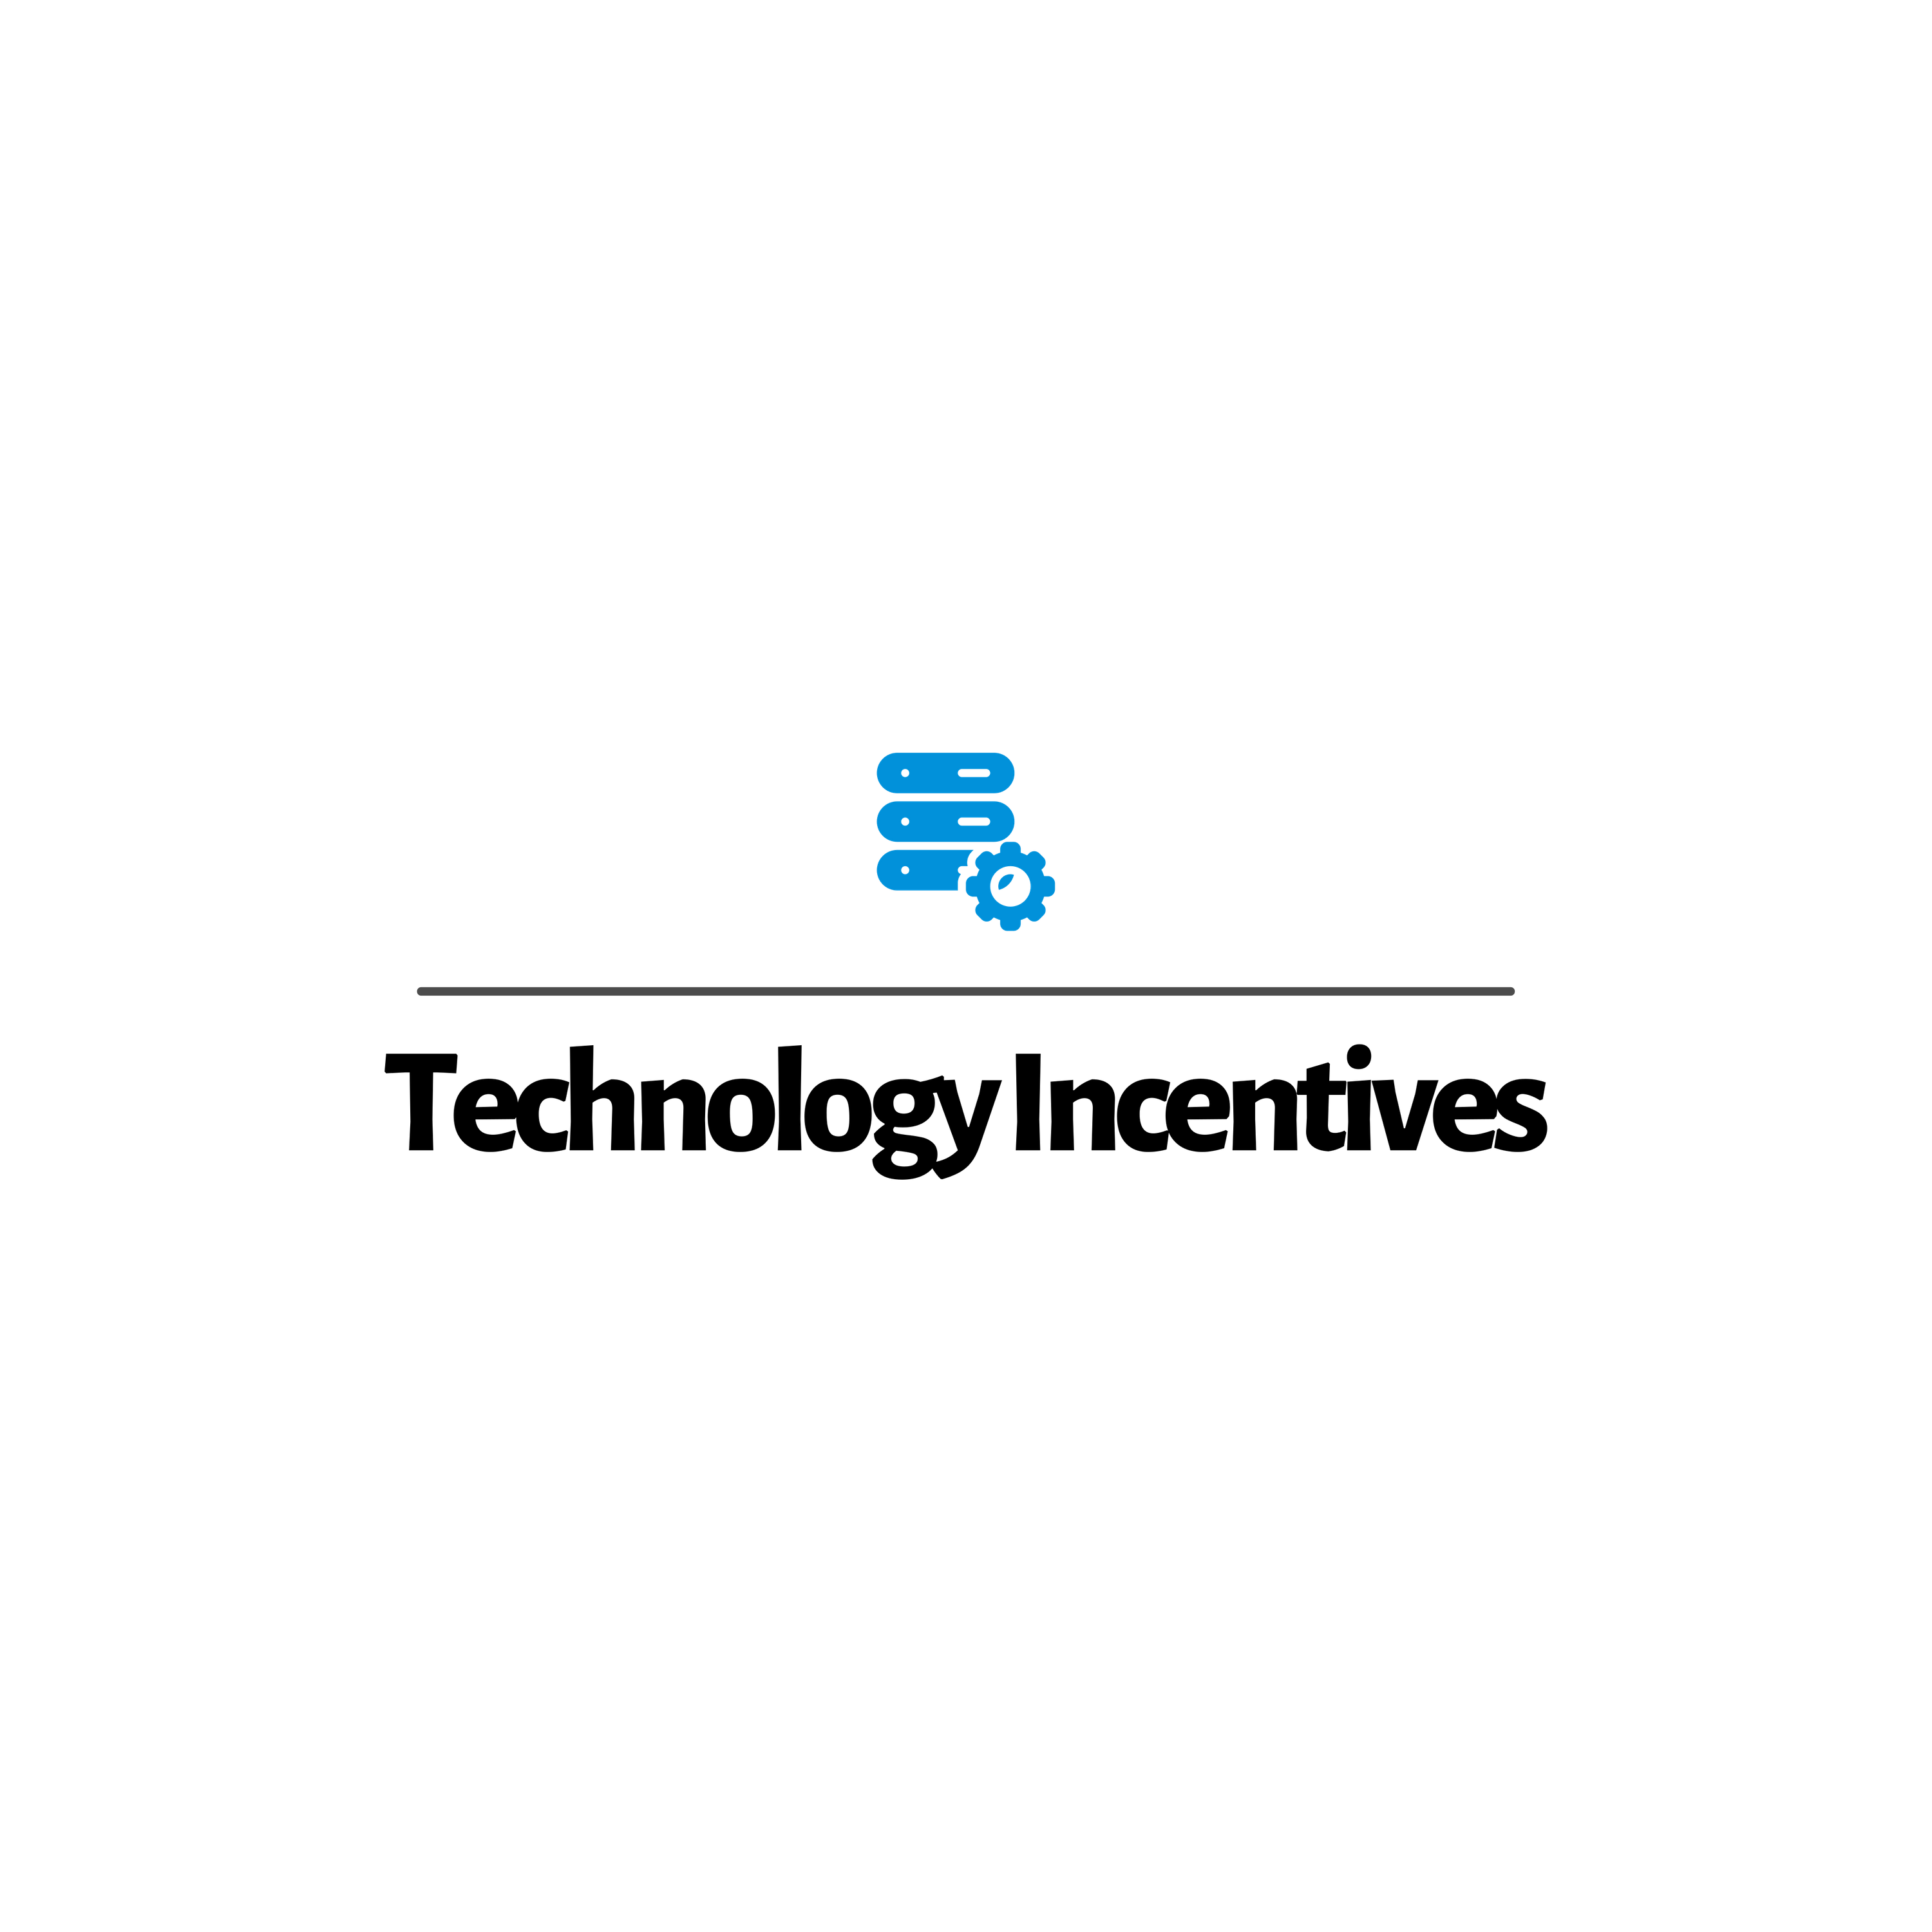 Technology Incentives